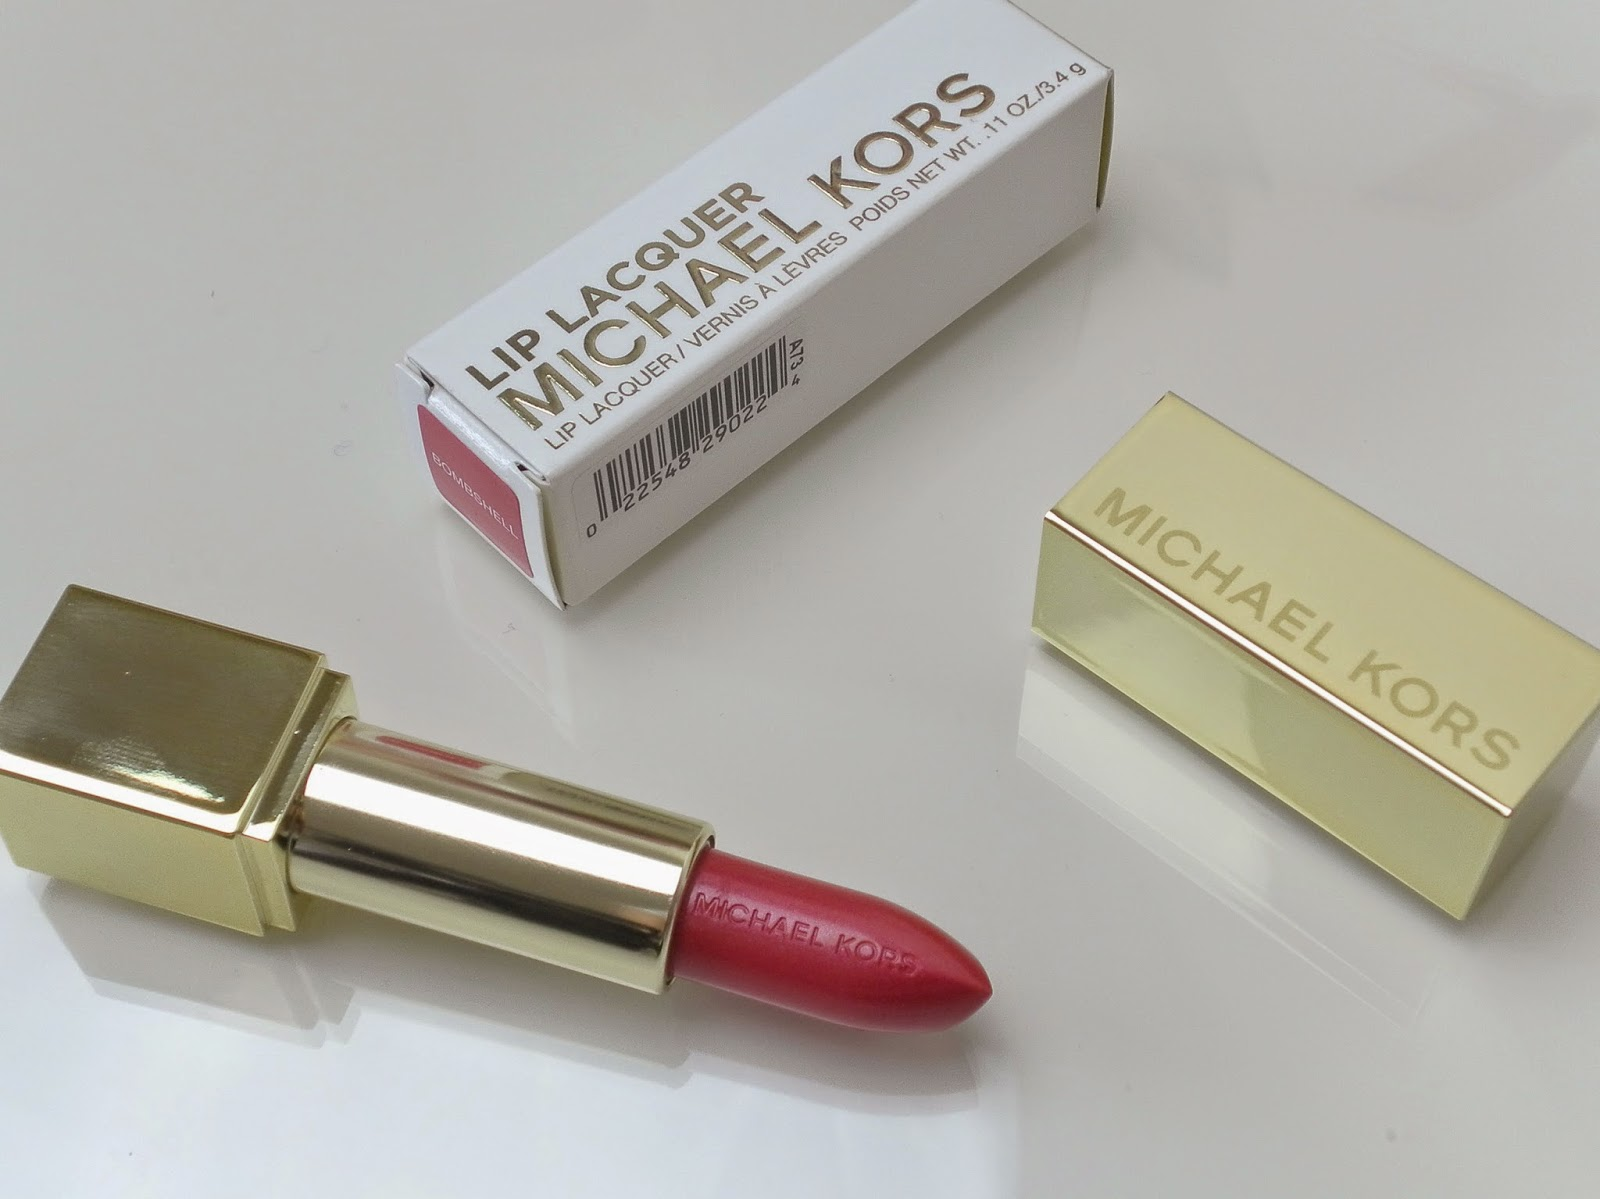 Michael Kors Sexy Lip Lacquer in Bombshell